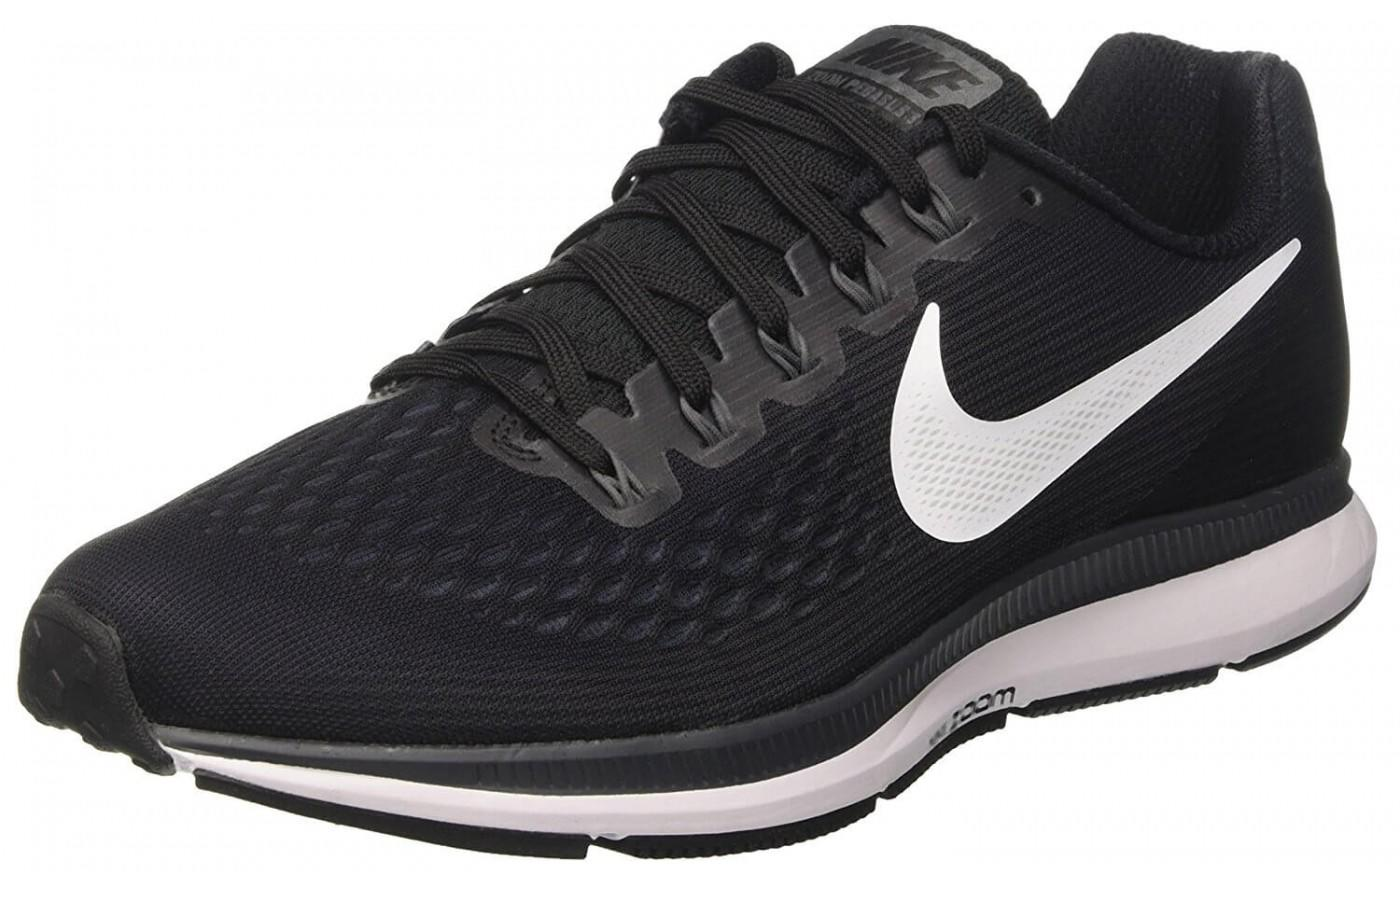 best website cfe90 0ef7b the upper of the Nike Air Zoom Pegasus 34 is made of breathable Flymesh ...